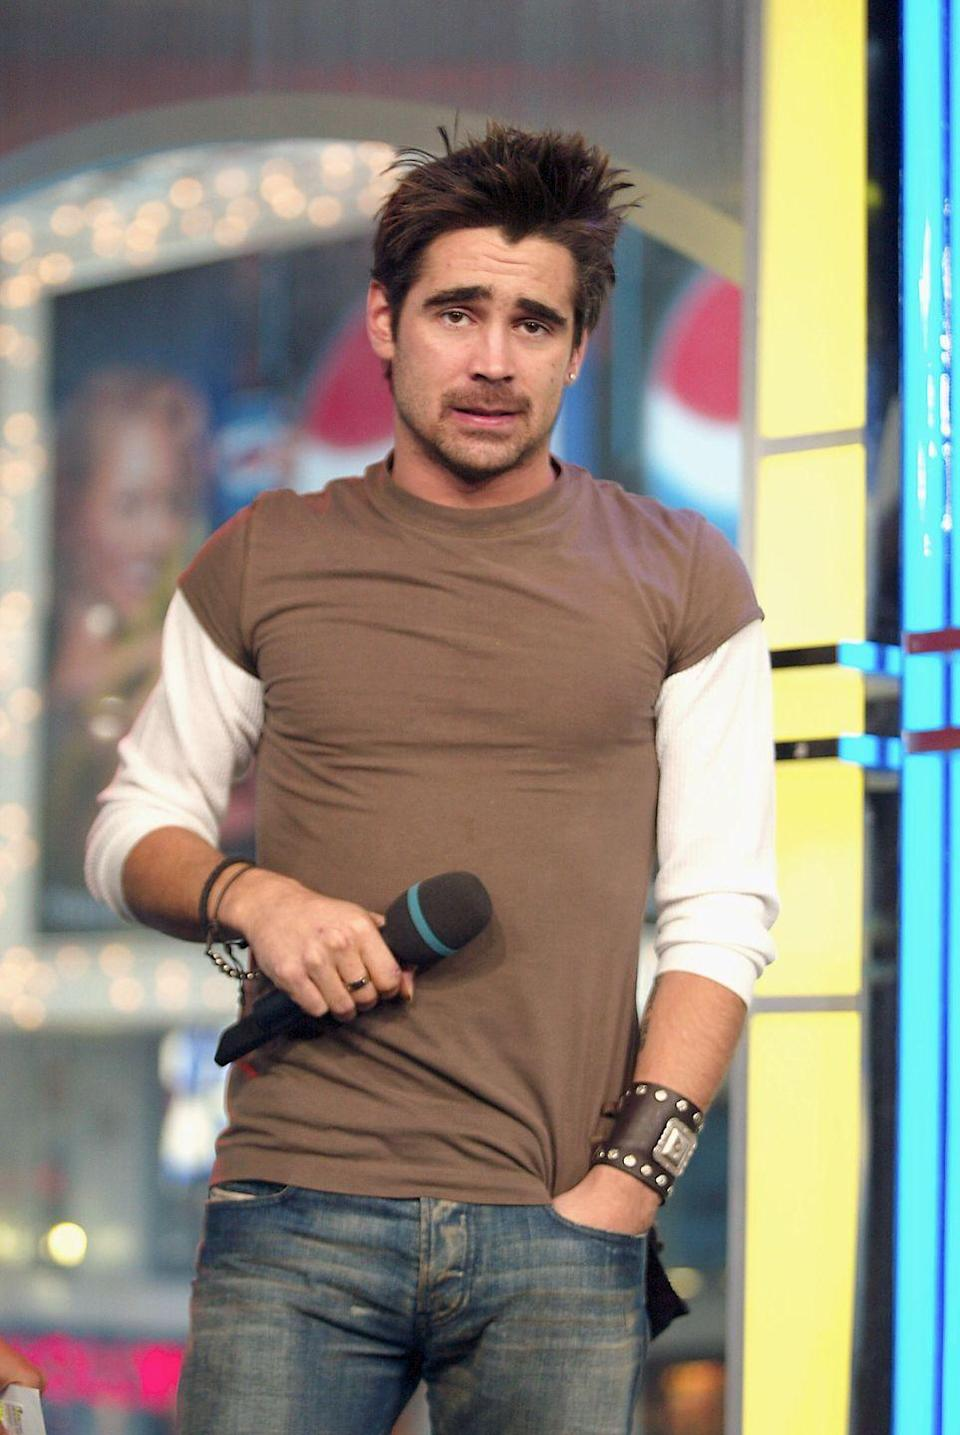 <p>Remember when all the cool dudes wore thick leather cuffs? So hot. Colin Farrell definitely earns bonus points on this outfit for the fitted layered t-shirt look. </p>